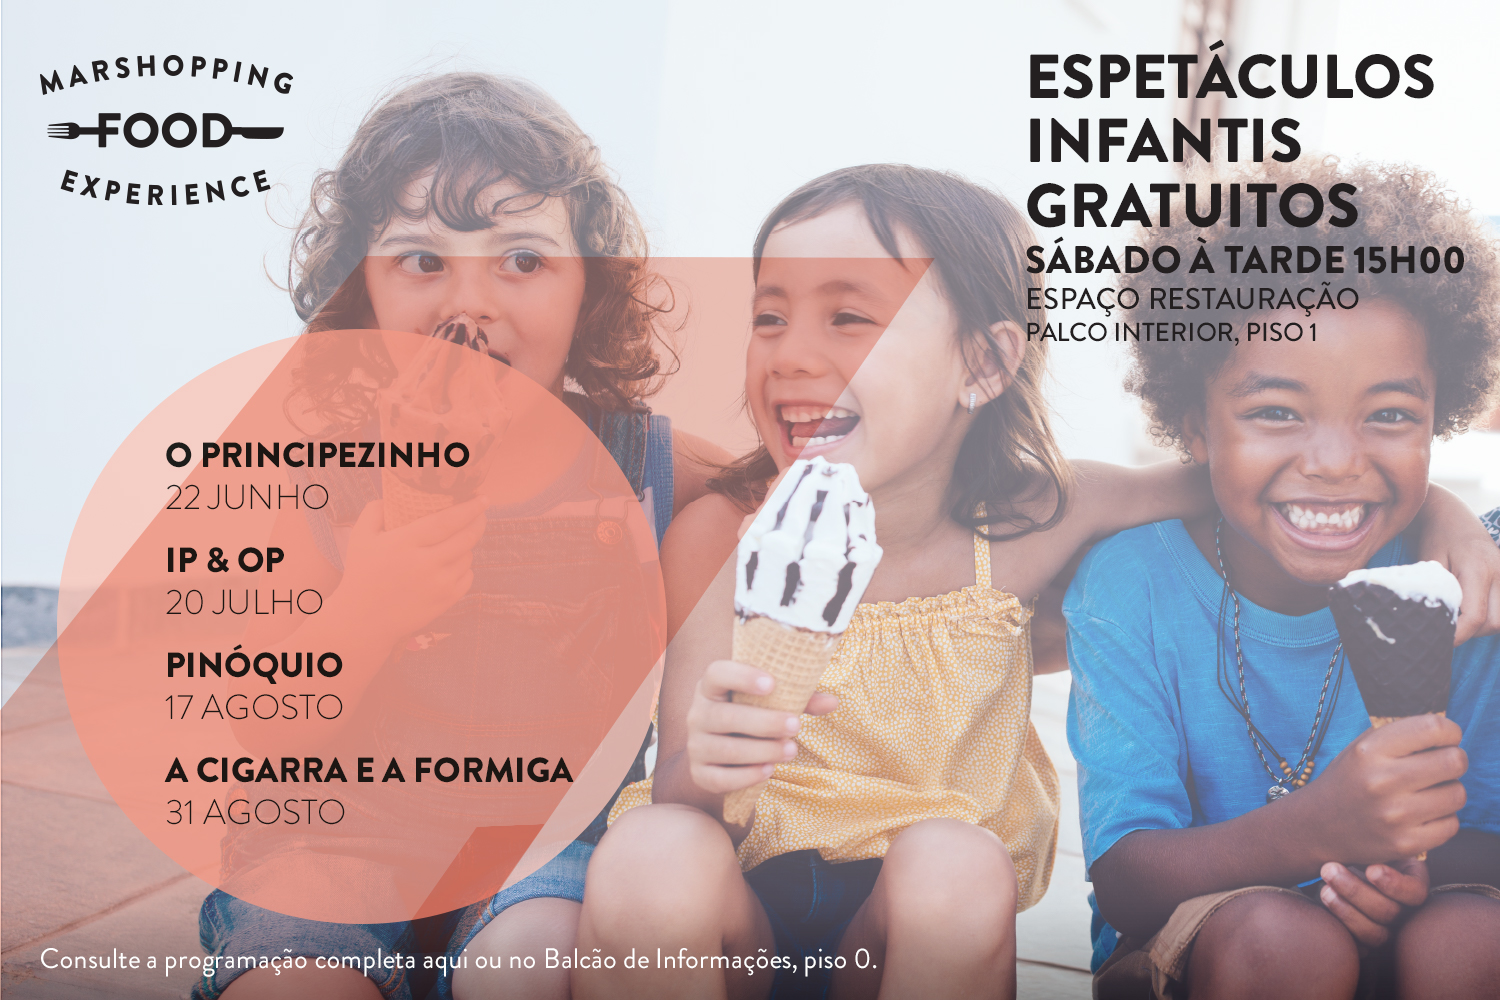 mar-shopping-food-experience-espetaculos-infantis